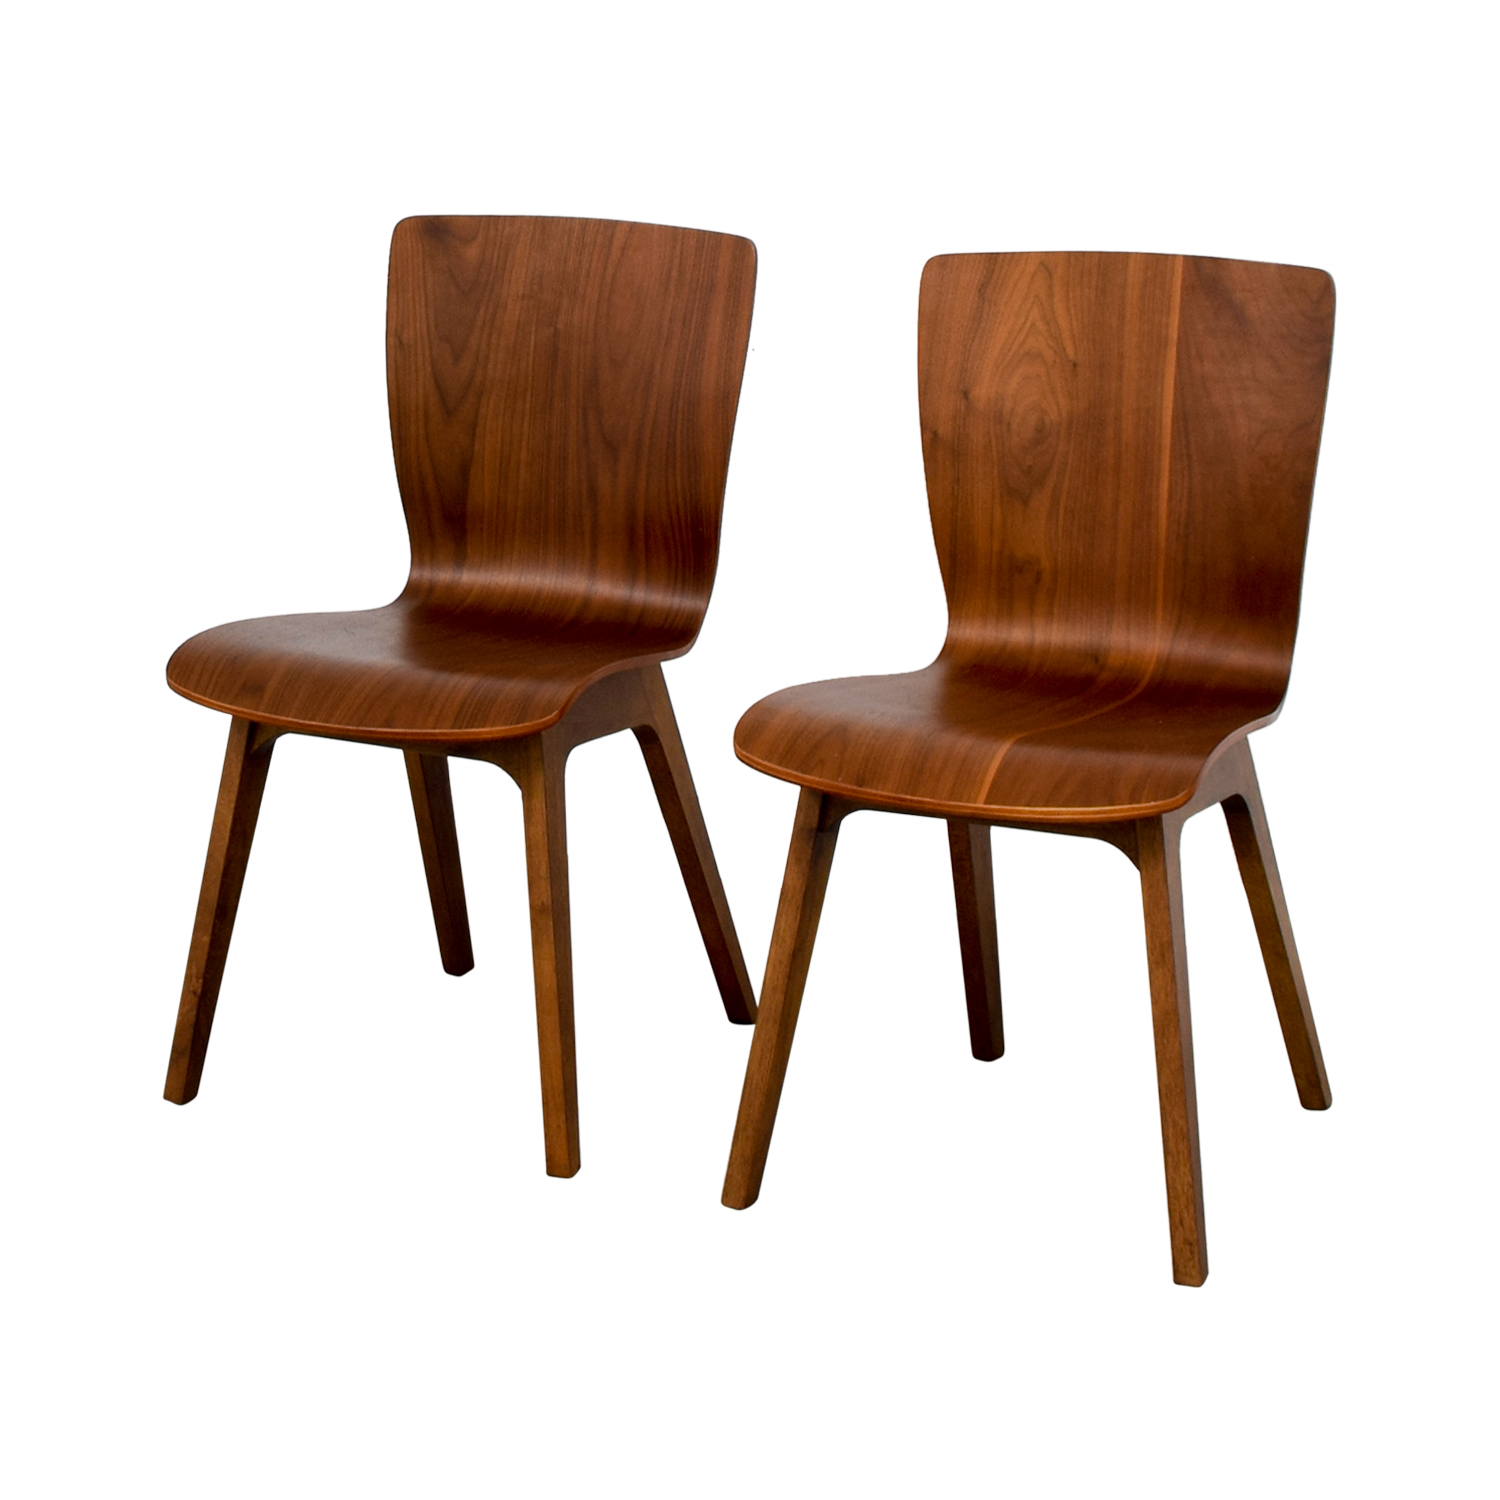 West Elm West Elm Crest Brentwood Chairs Chairs